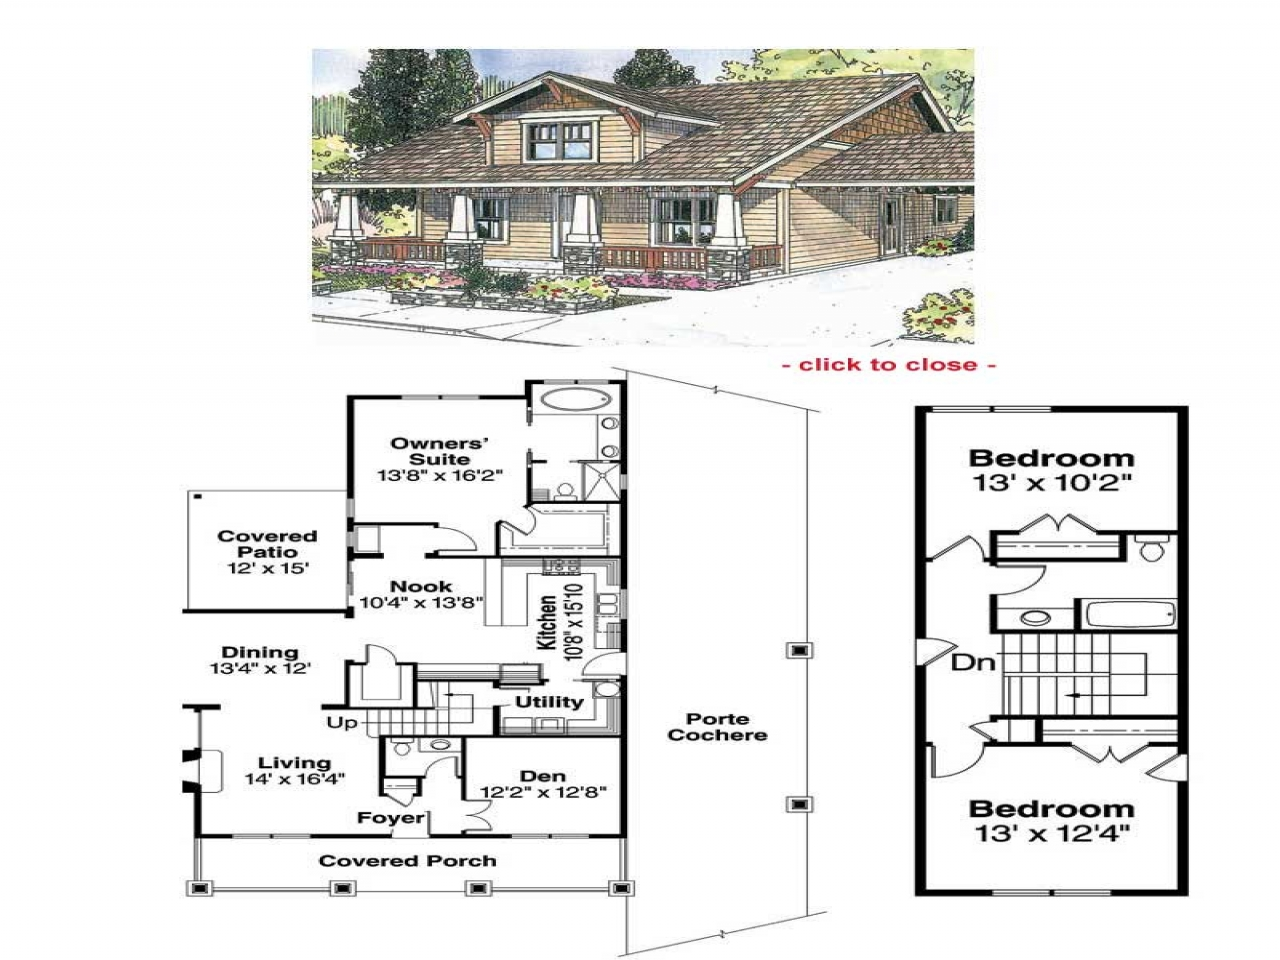 Craftsman bungalow plans find house plans vintage for Buy building plans